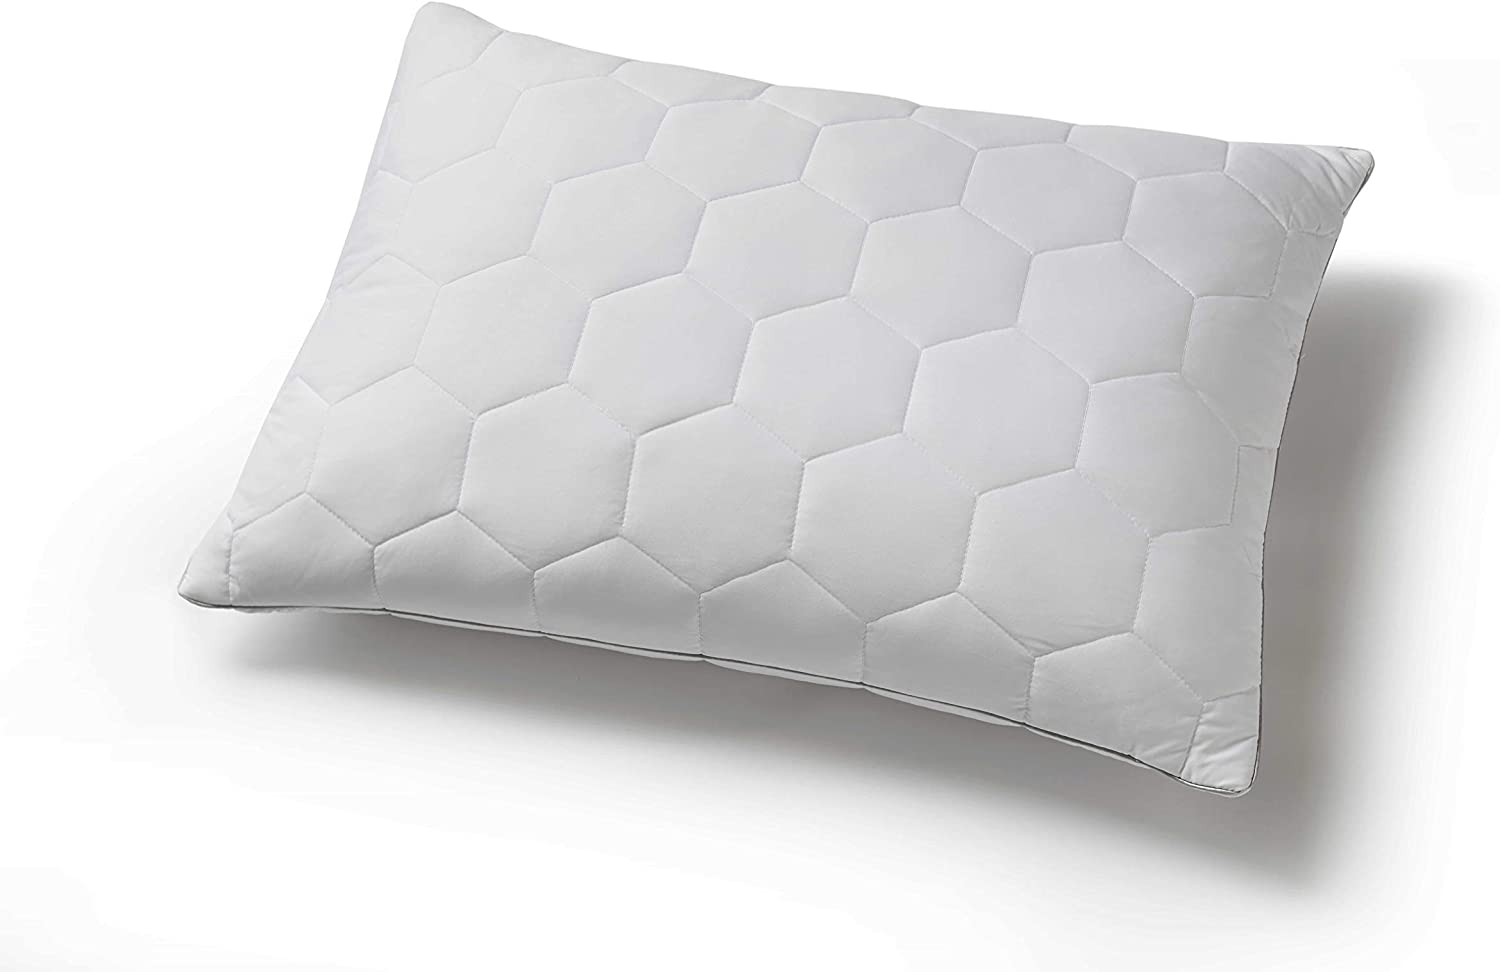 SHEEX - Original Performance Down Alternative Stomach/Back Sleeper Pillow, Perfectly Aligns Head and Neckneck for Better Sleep, All The Softness Without Allergies - King